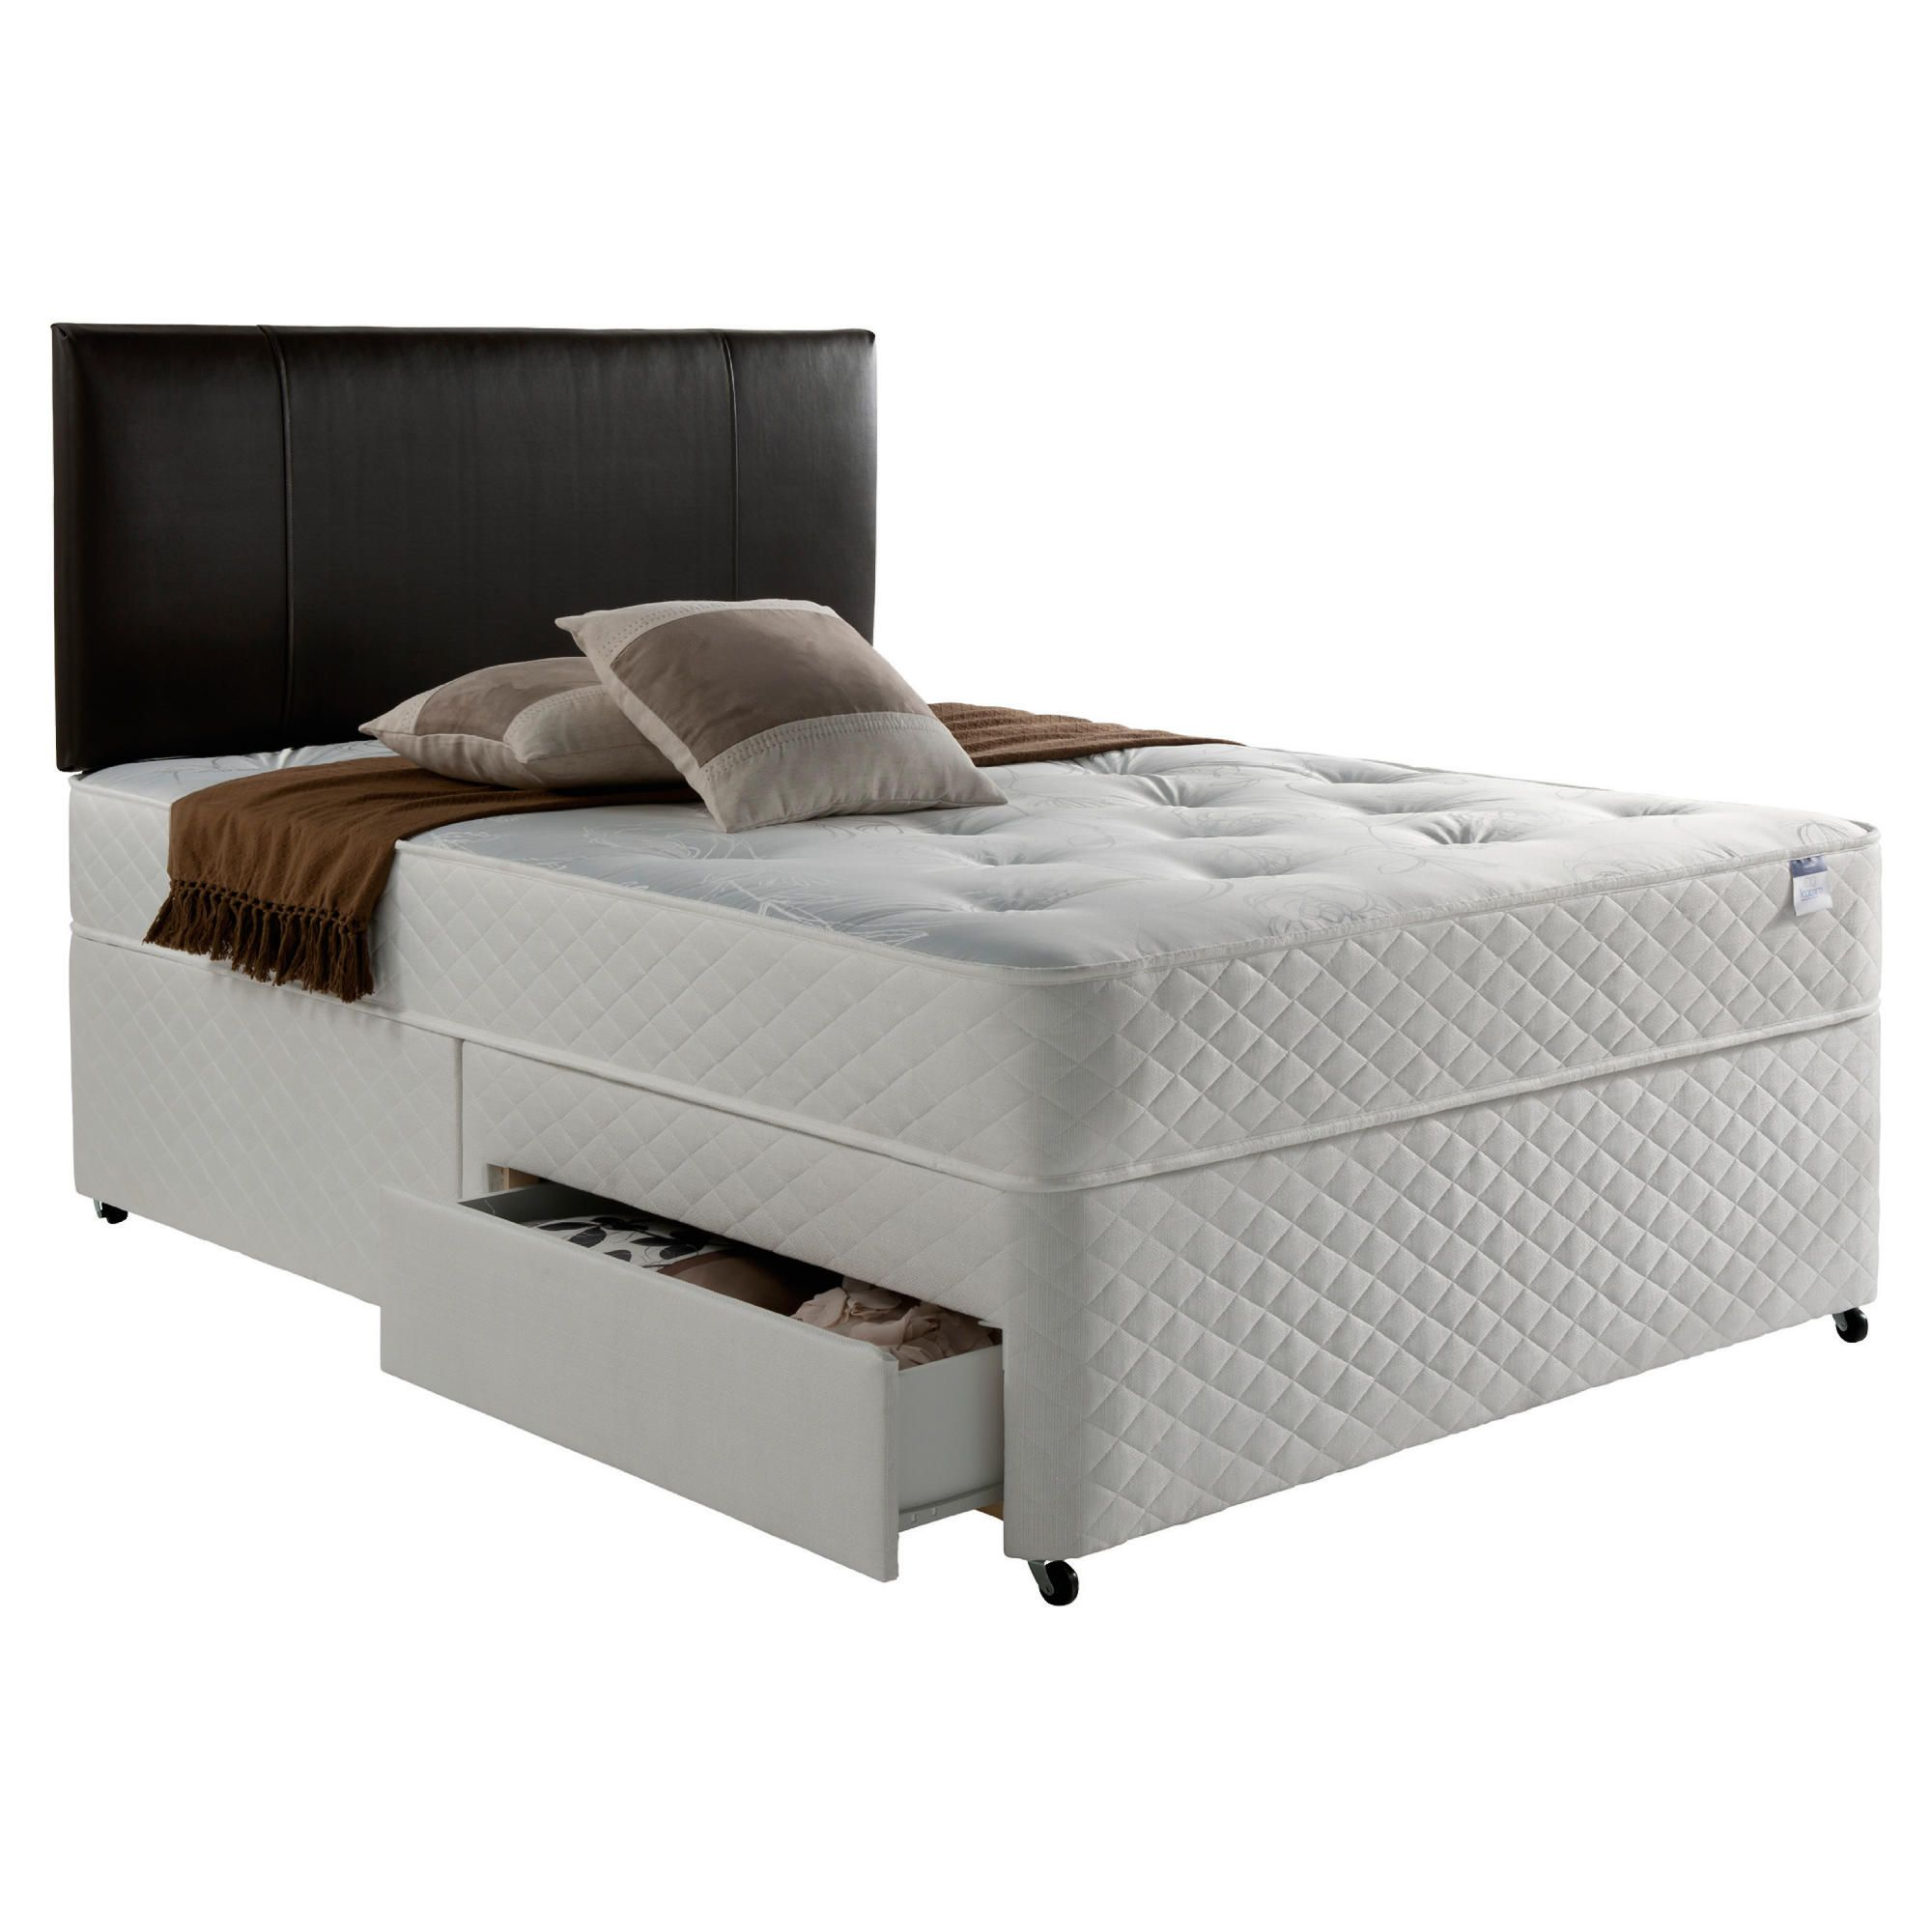 Silentnight Miracoil Comfort Ortho Tuft 4 Drawer Super King Divan at Tesco Direct